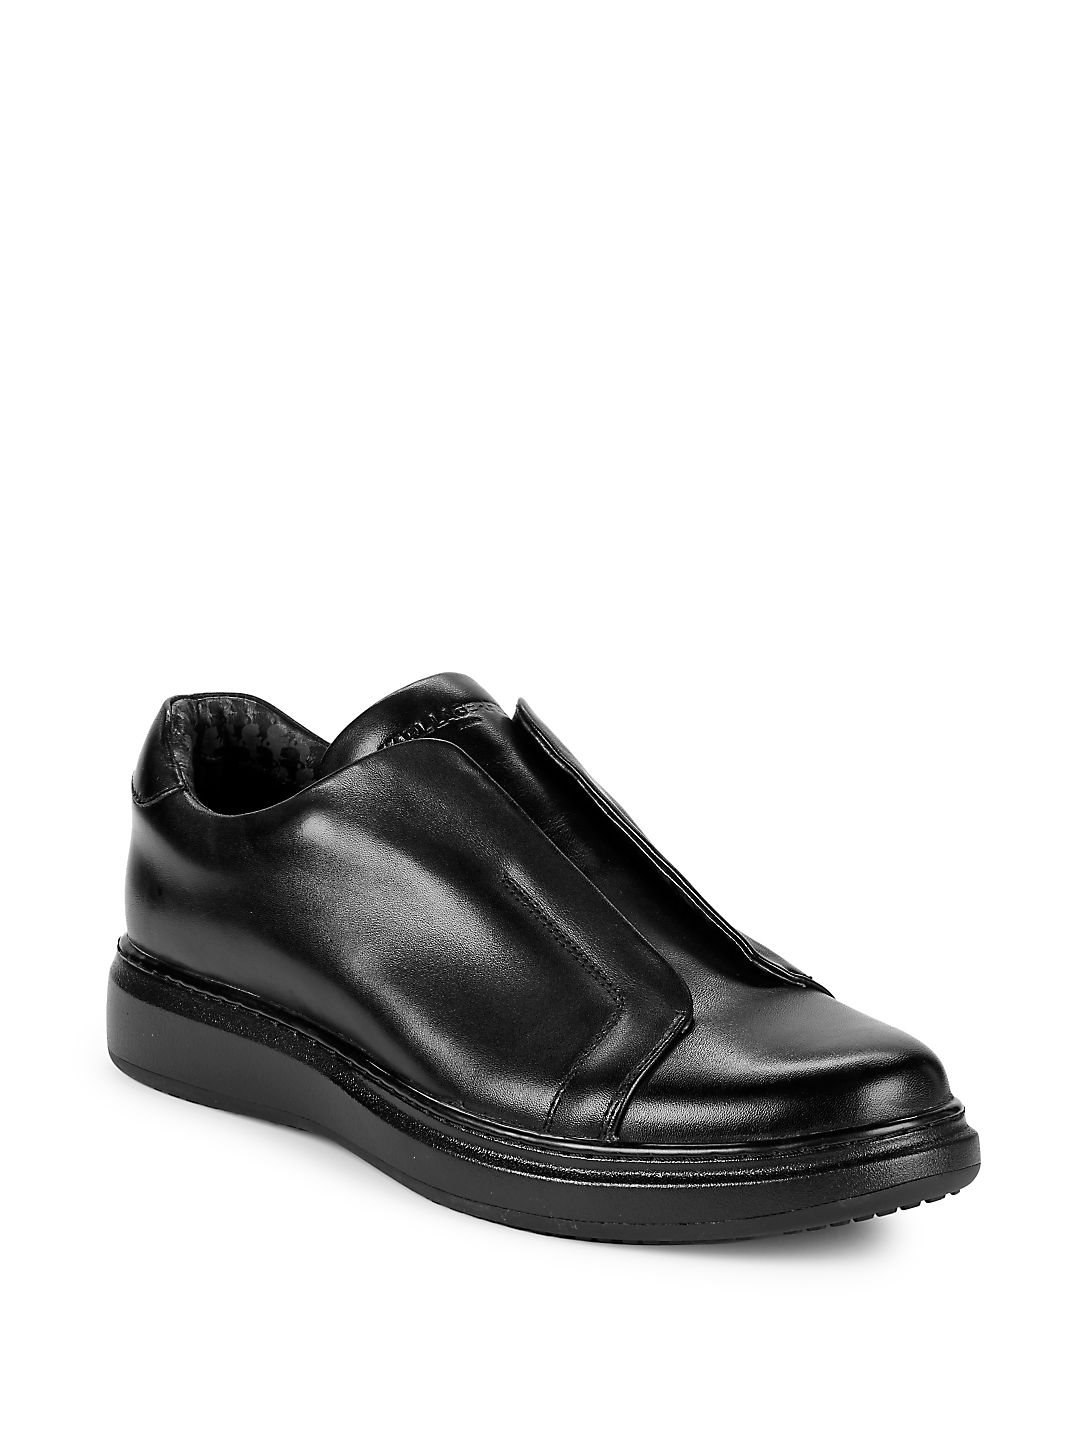 Flap Leather Slip-On Sneakers